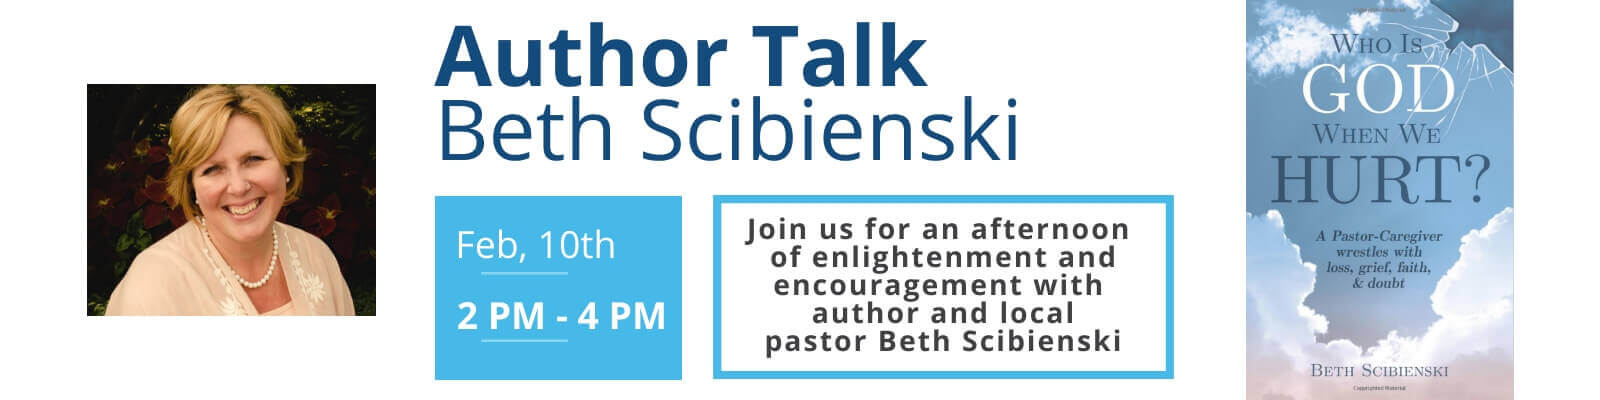 Adult Event | Author Talk with Beth Scibienski | February 10th @ 2pm